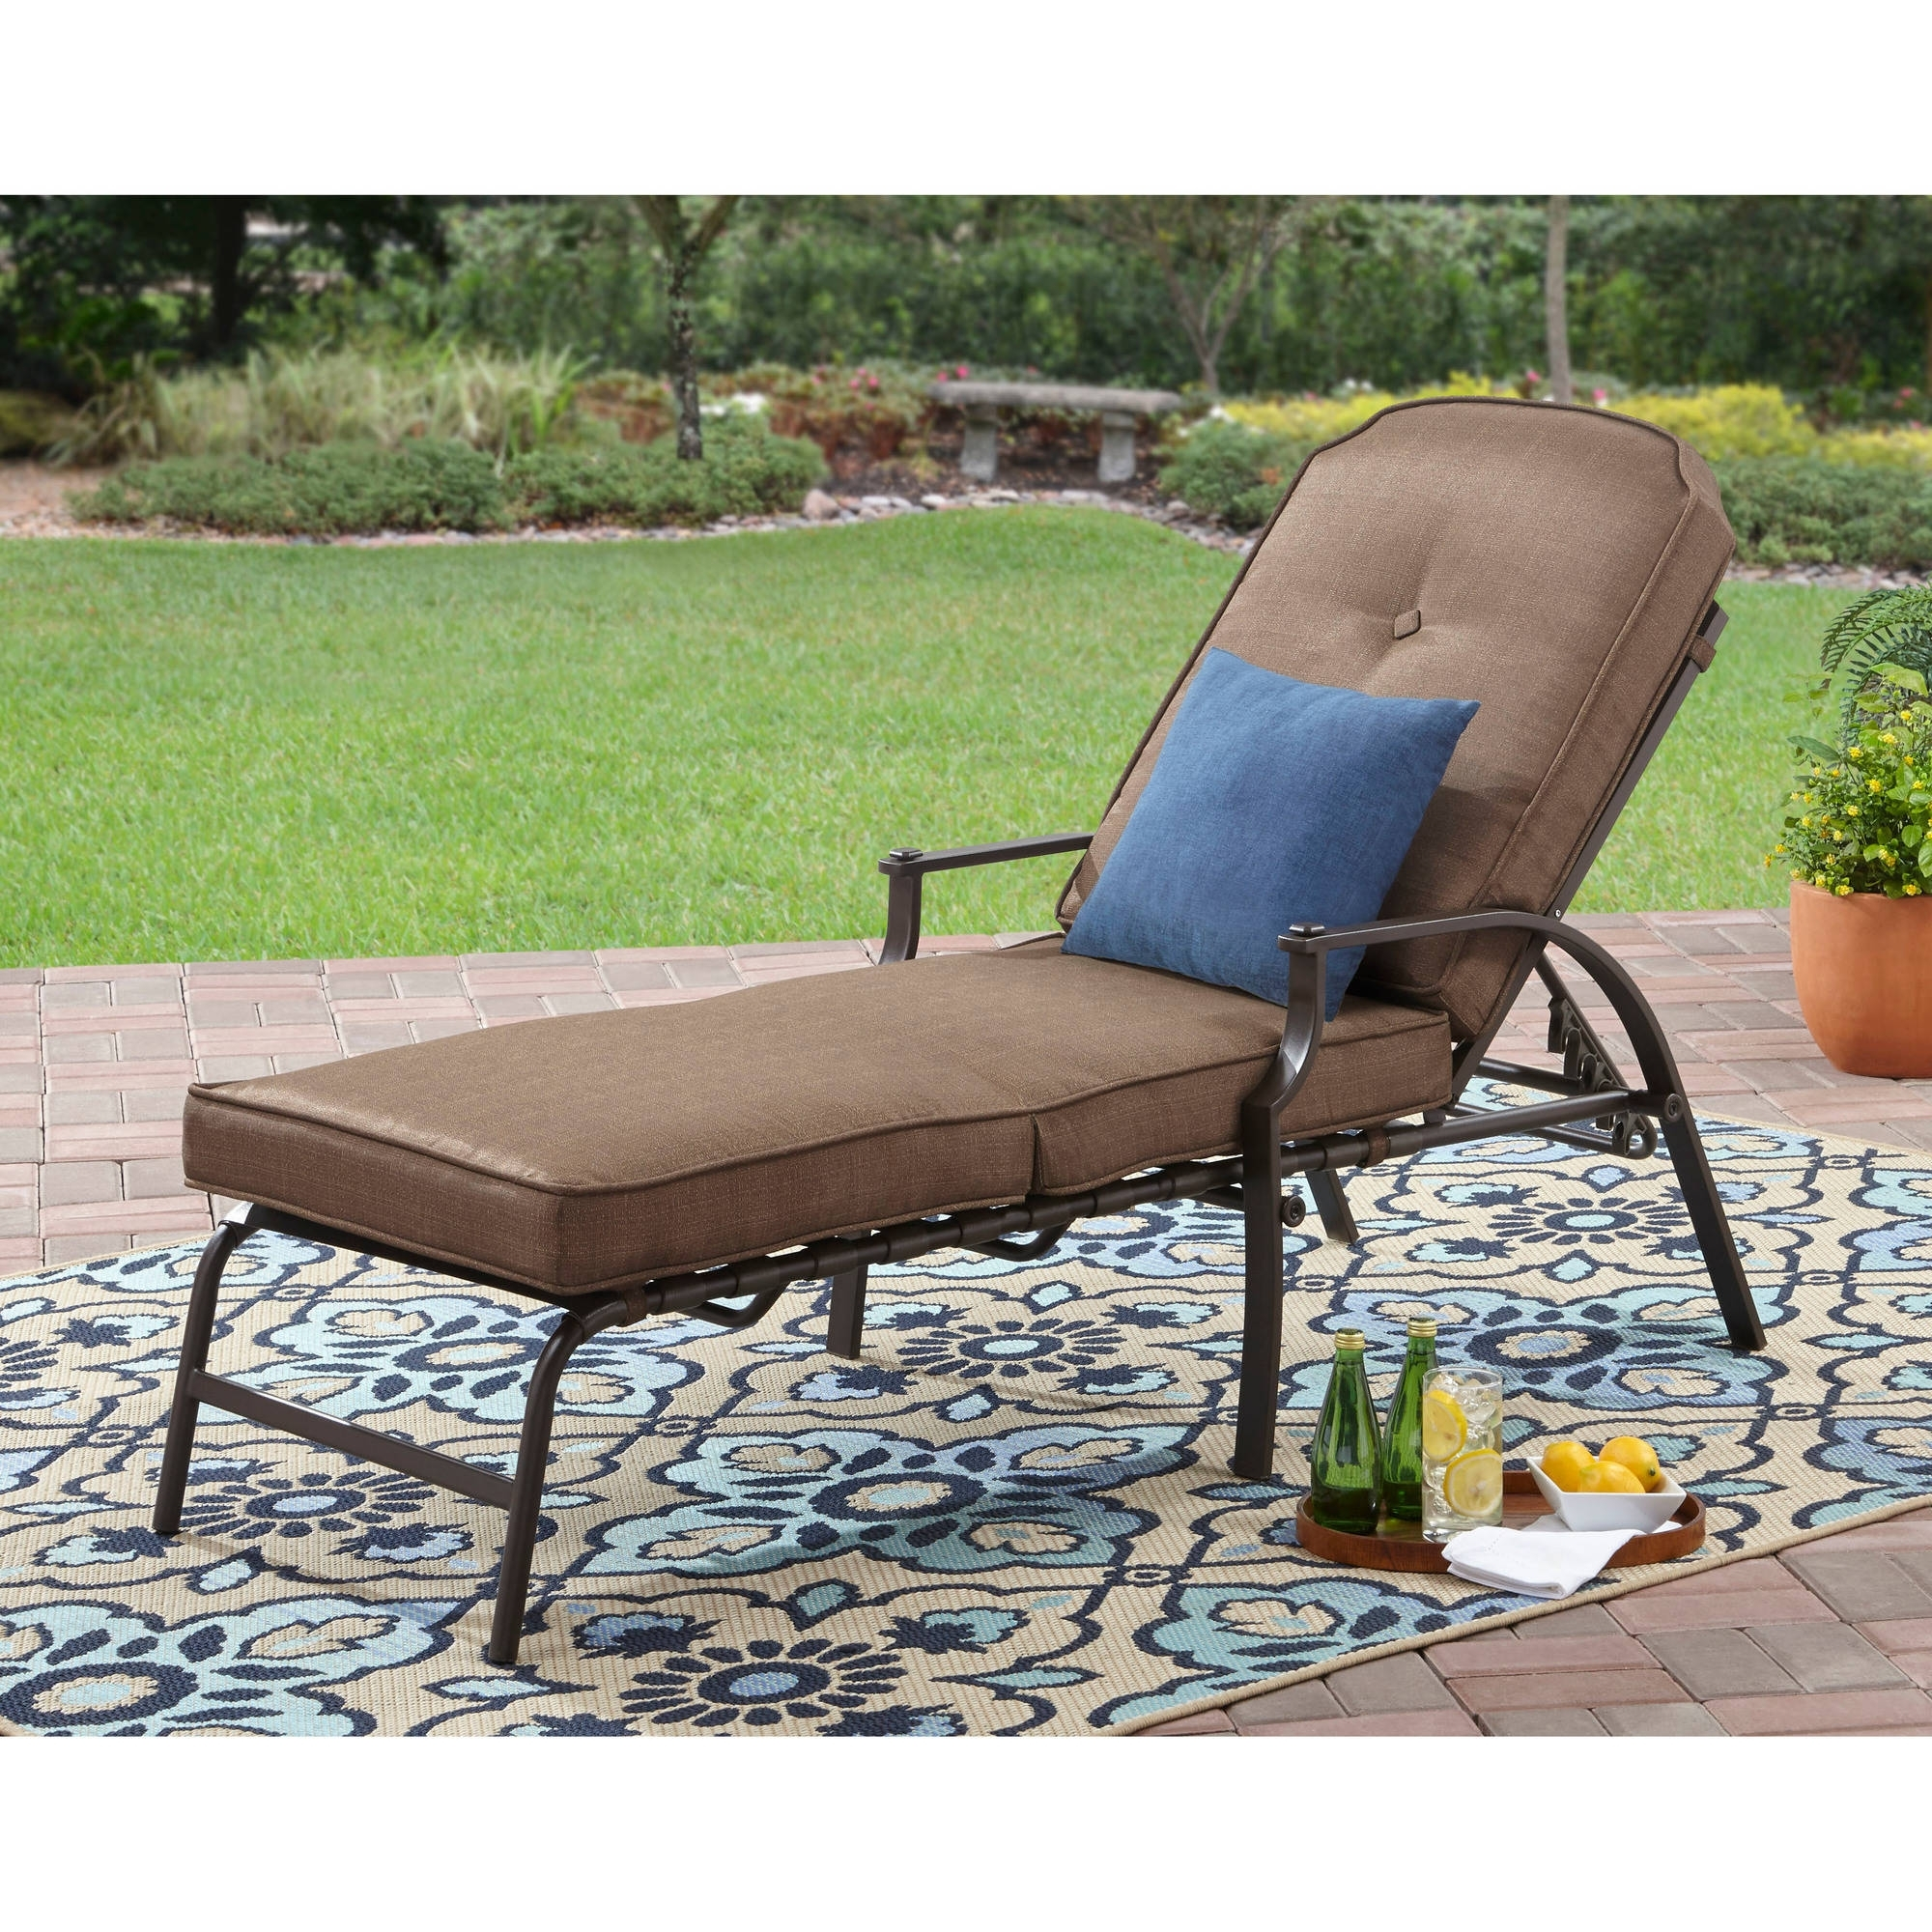 Mainstays Wentworth Chaise Lounge – Walmart In Widely Used Walmart Chaise Lounge Chairs (View 12 of 15)